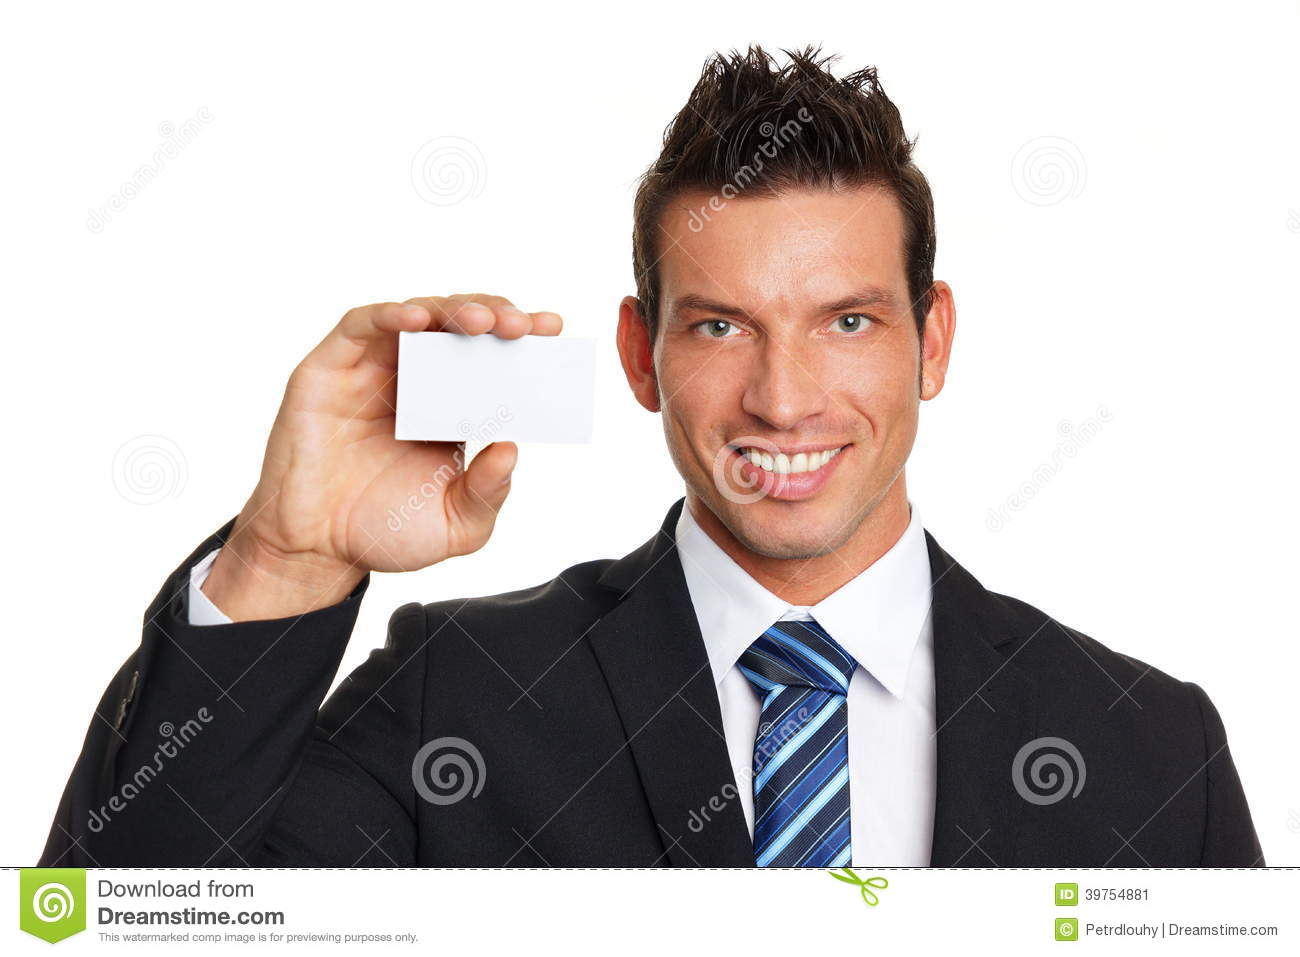 Smiling businessman with business card